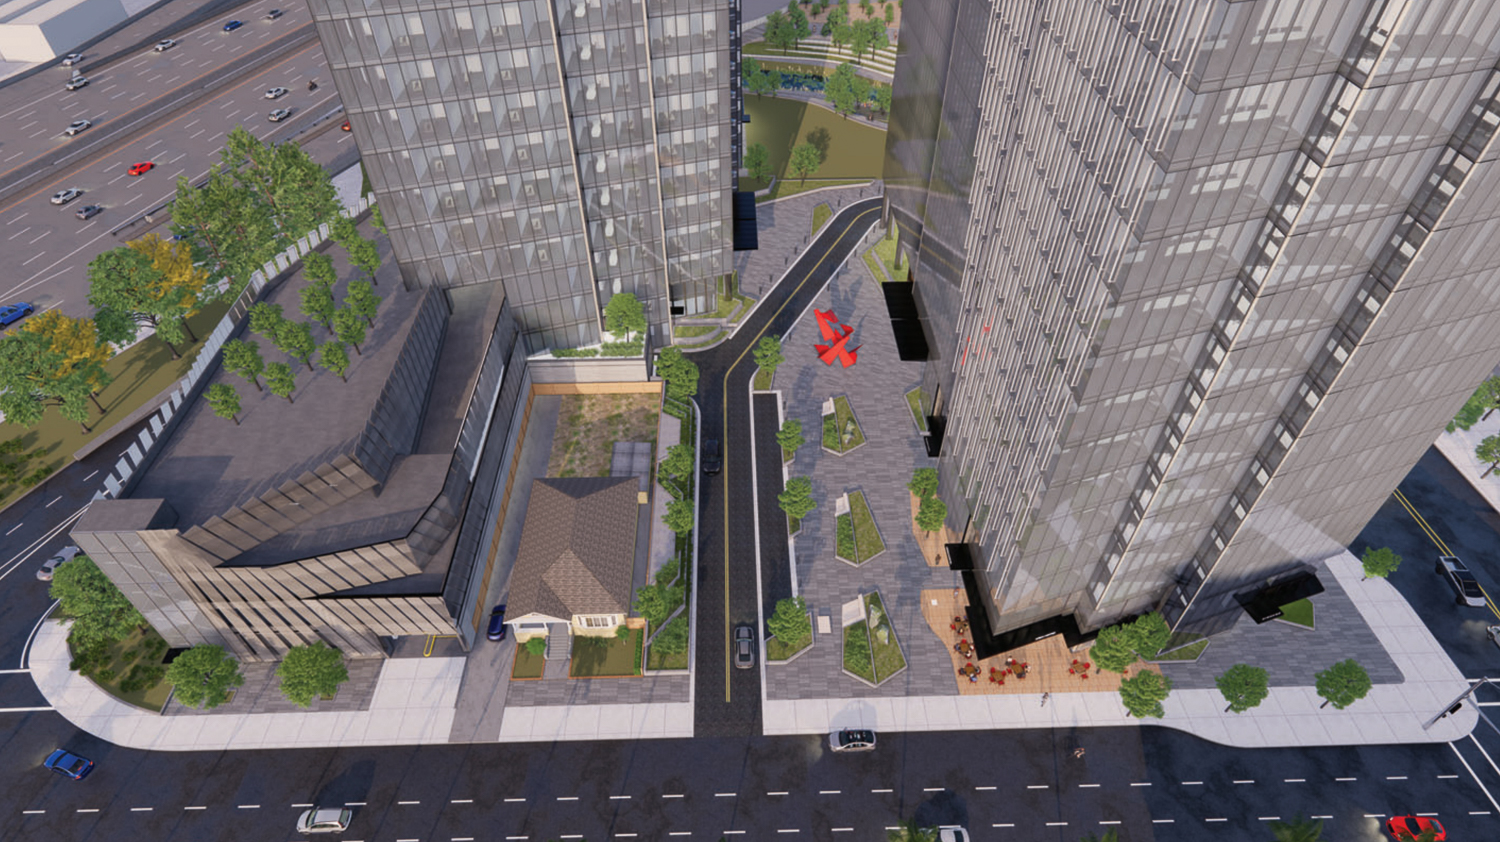 Woz Way Tower aerial perspective looking down onto the plaza, rendering by C2K Architecture